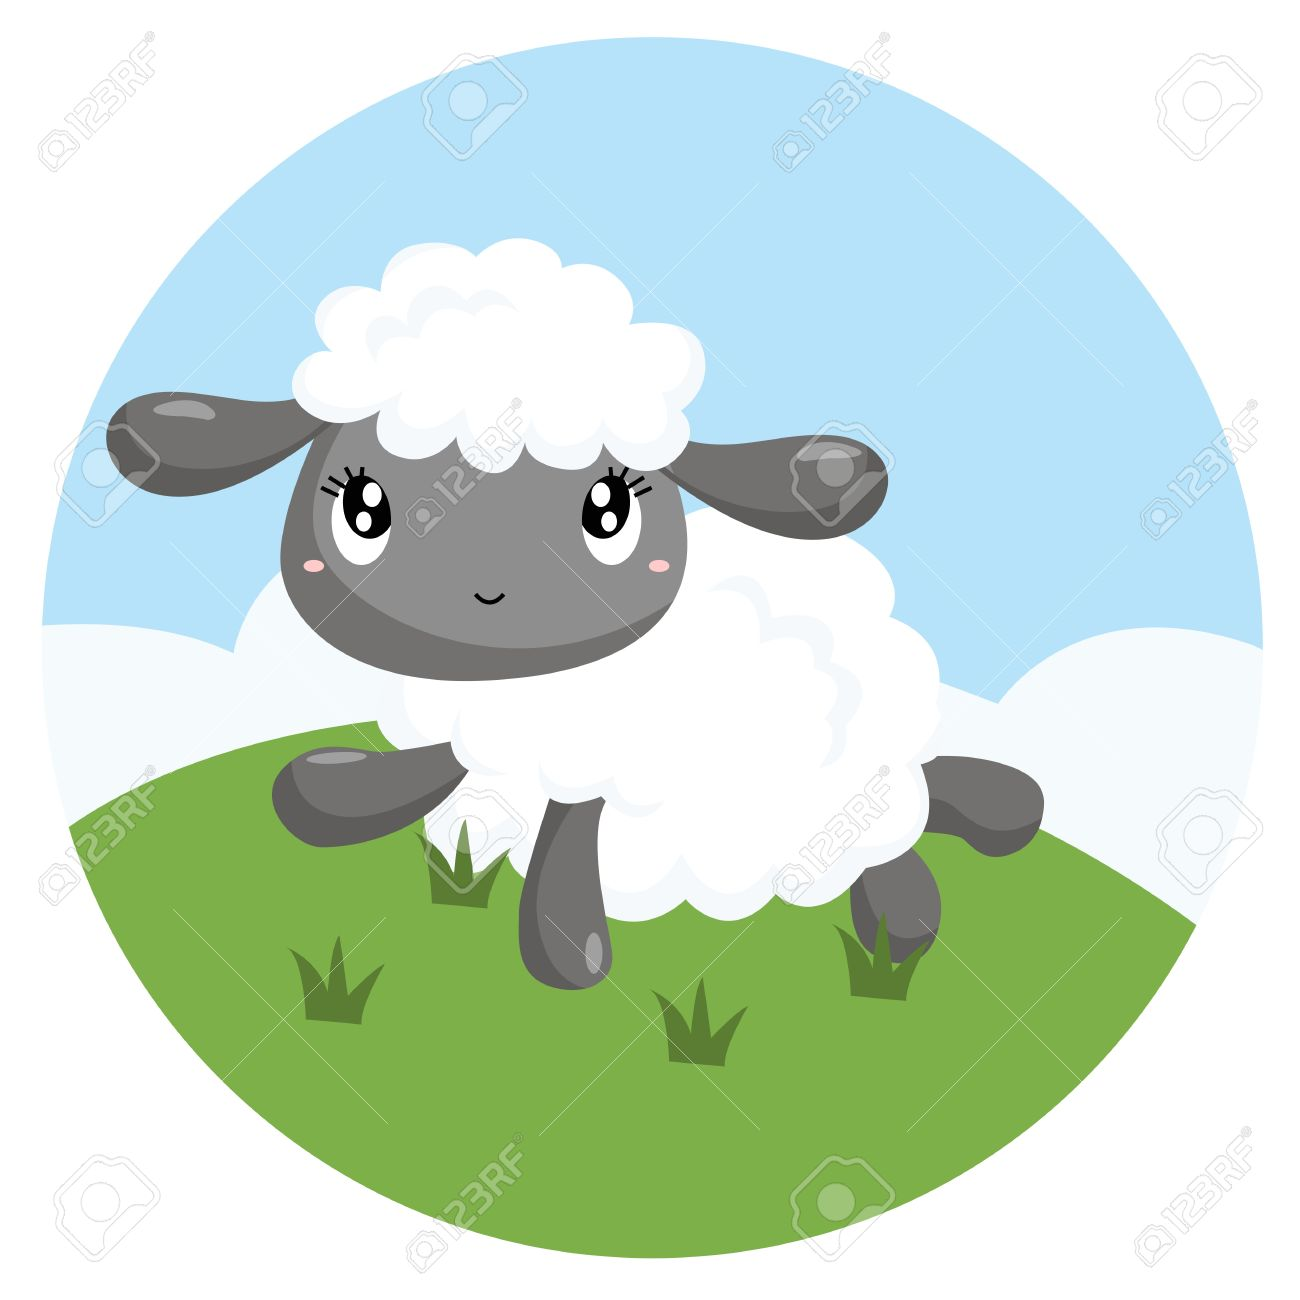 Little Sheep Stock Photos Images. Royalty Free Little Sheep Images.